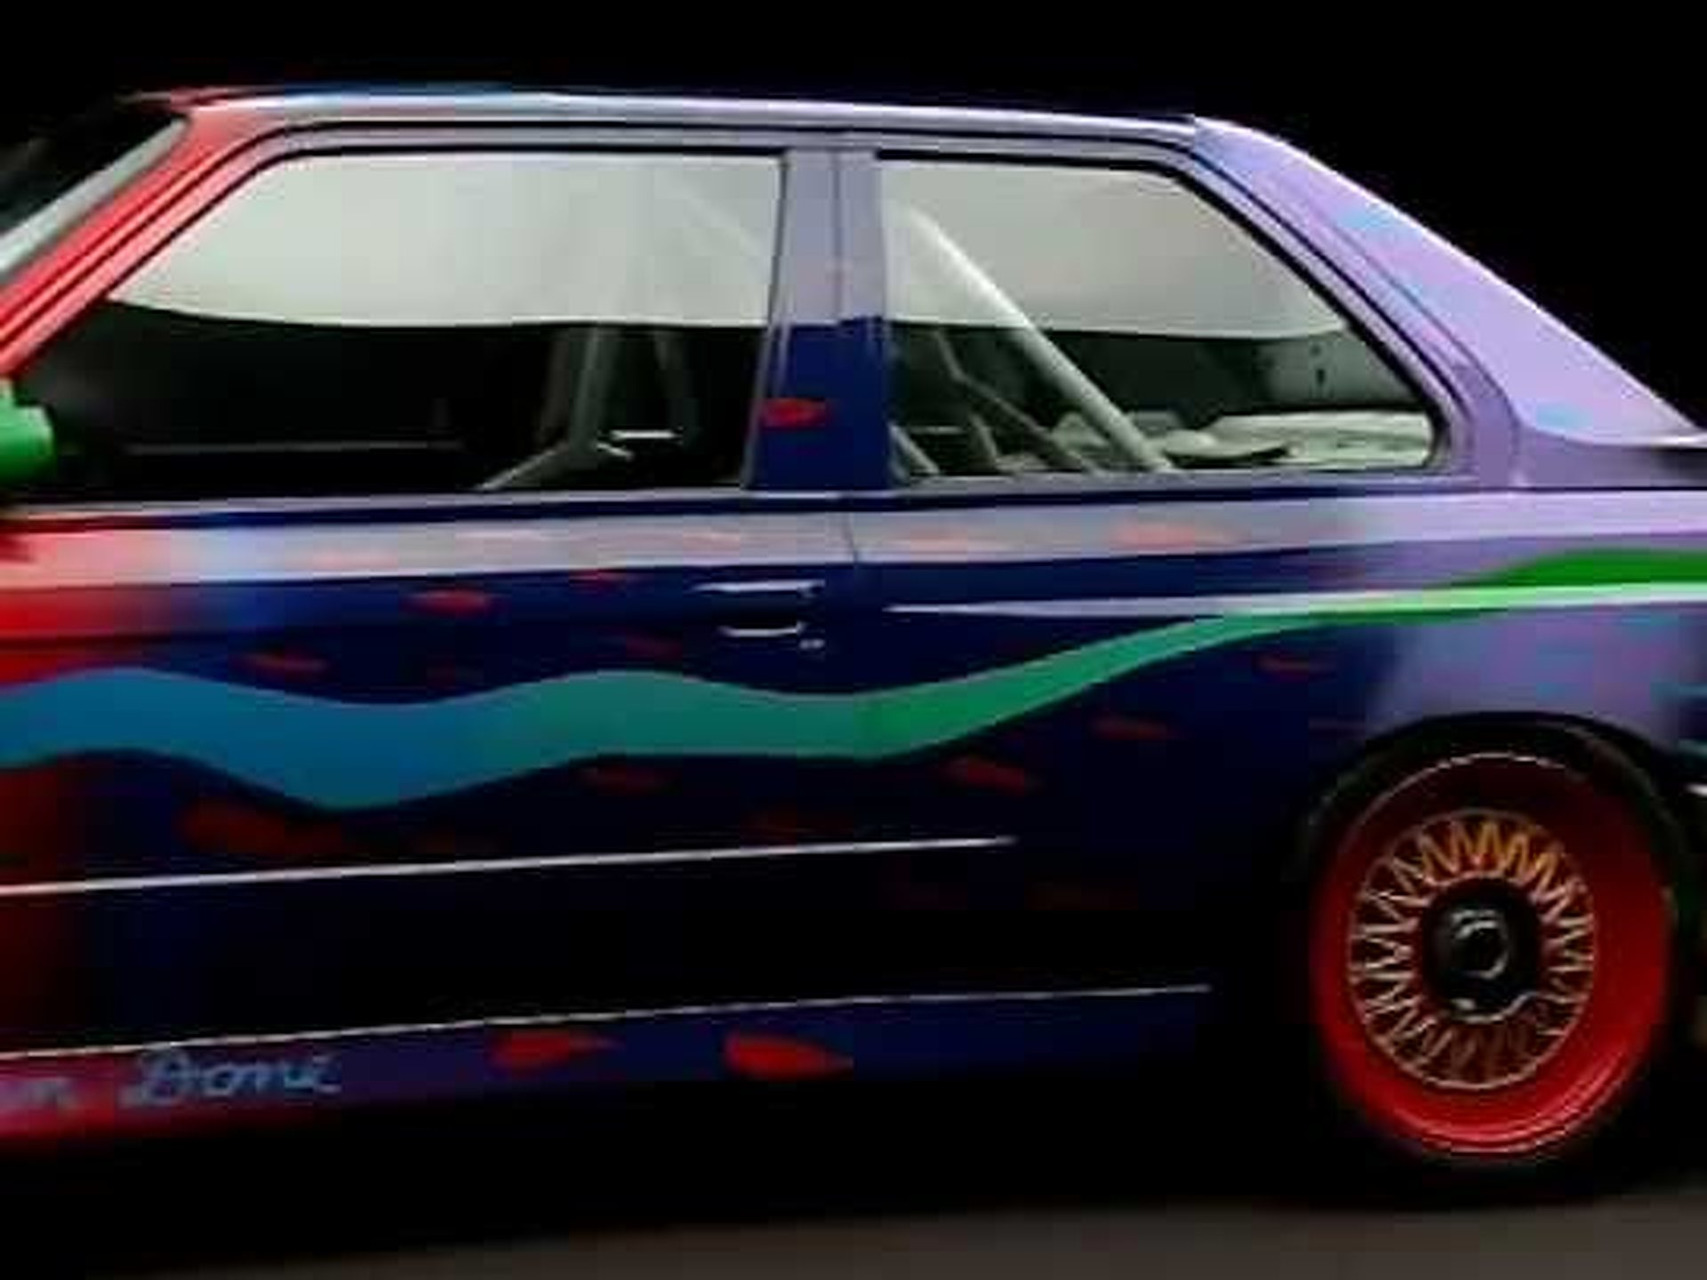 BMW M3 Art Car von Ken Done, 1989